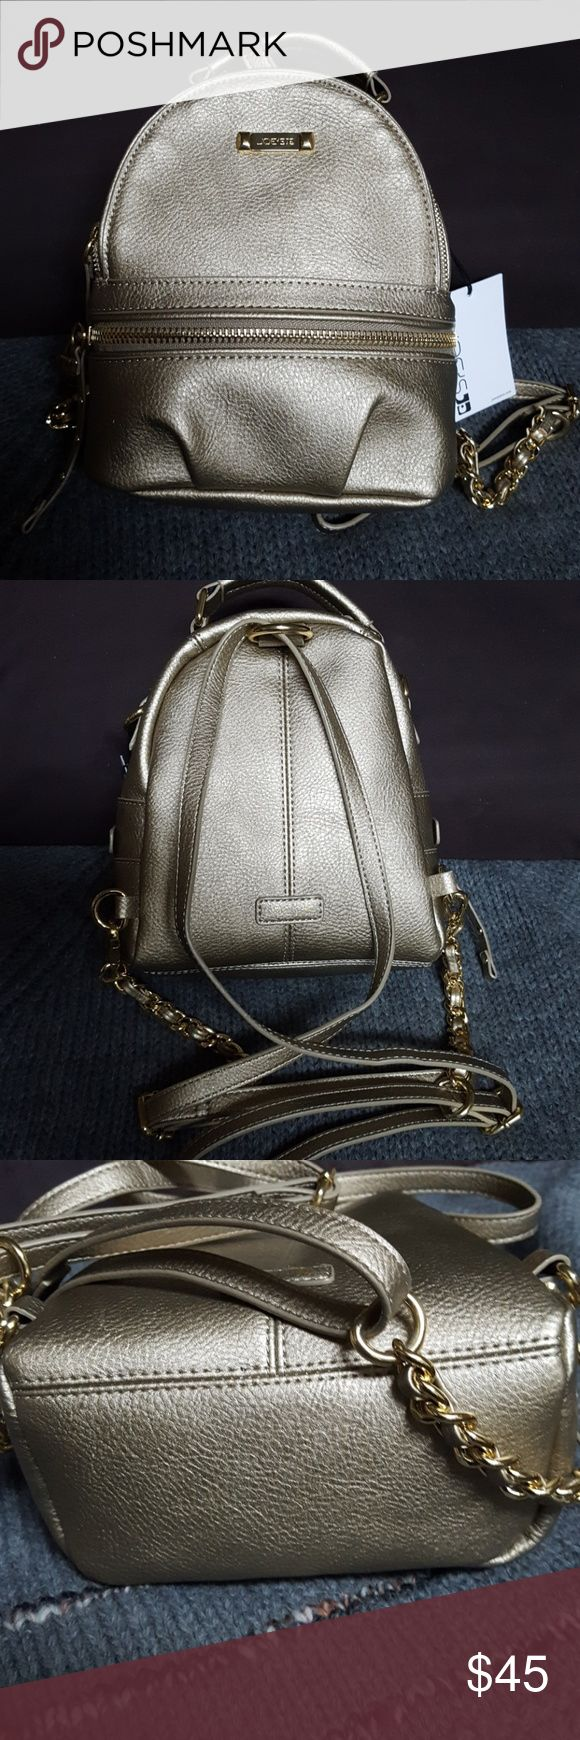 """NWT Joe's gold backpack style handbag NWT Joe's small gold backpack style handbag,  gold details with gold tone chain and leather straps. Has a front zipper pocket and inside pocket. Measures approximately 8"""" wide x 81/2"""" tall, bottom measures 7"""" X 3"""". NWT Joe's Bags Backpacks"""